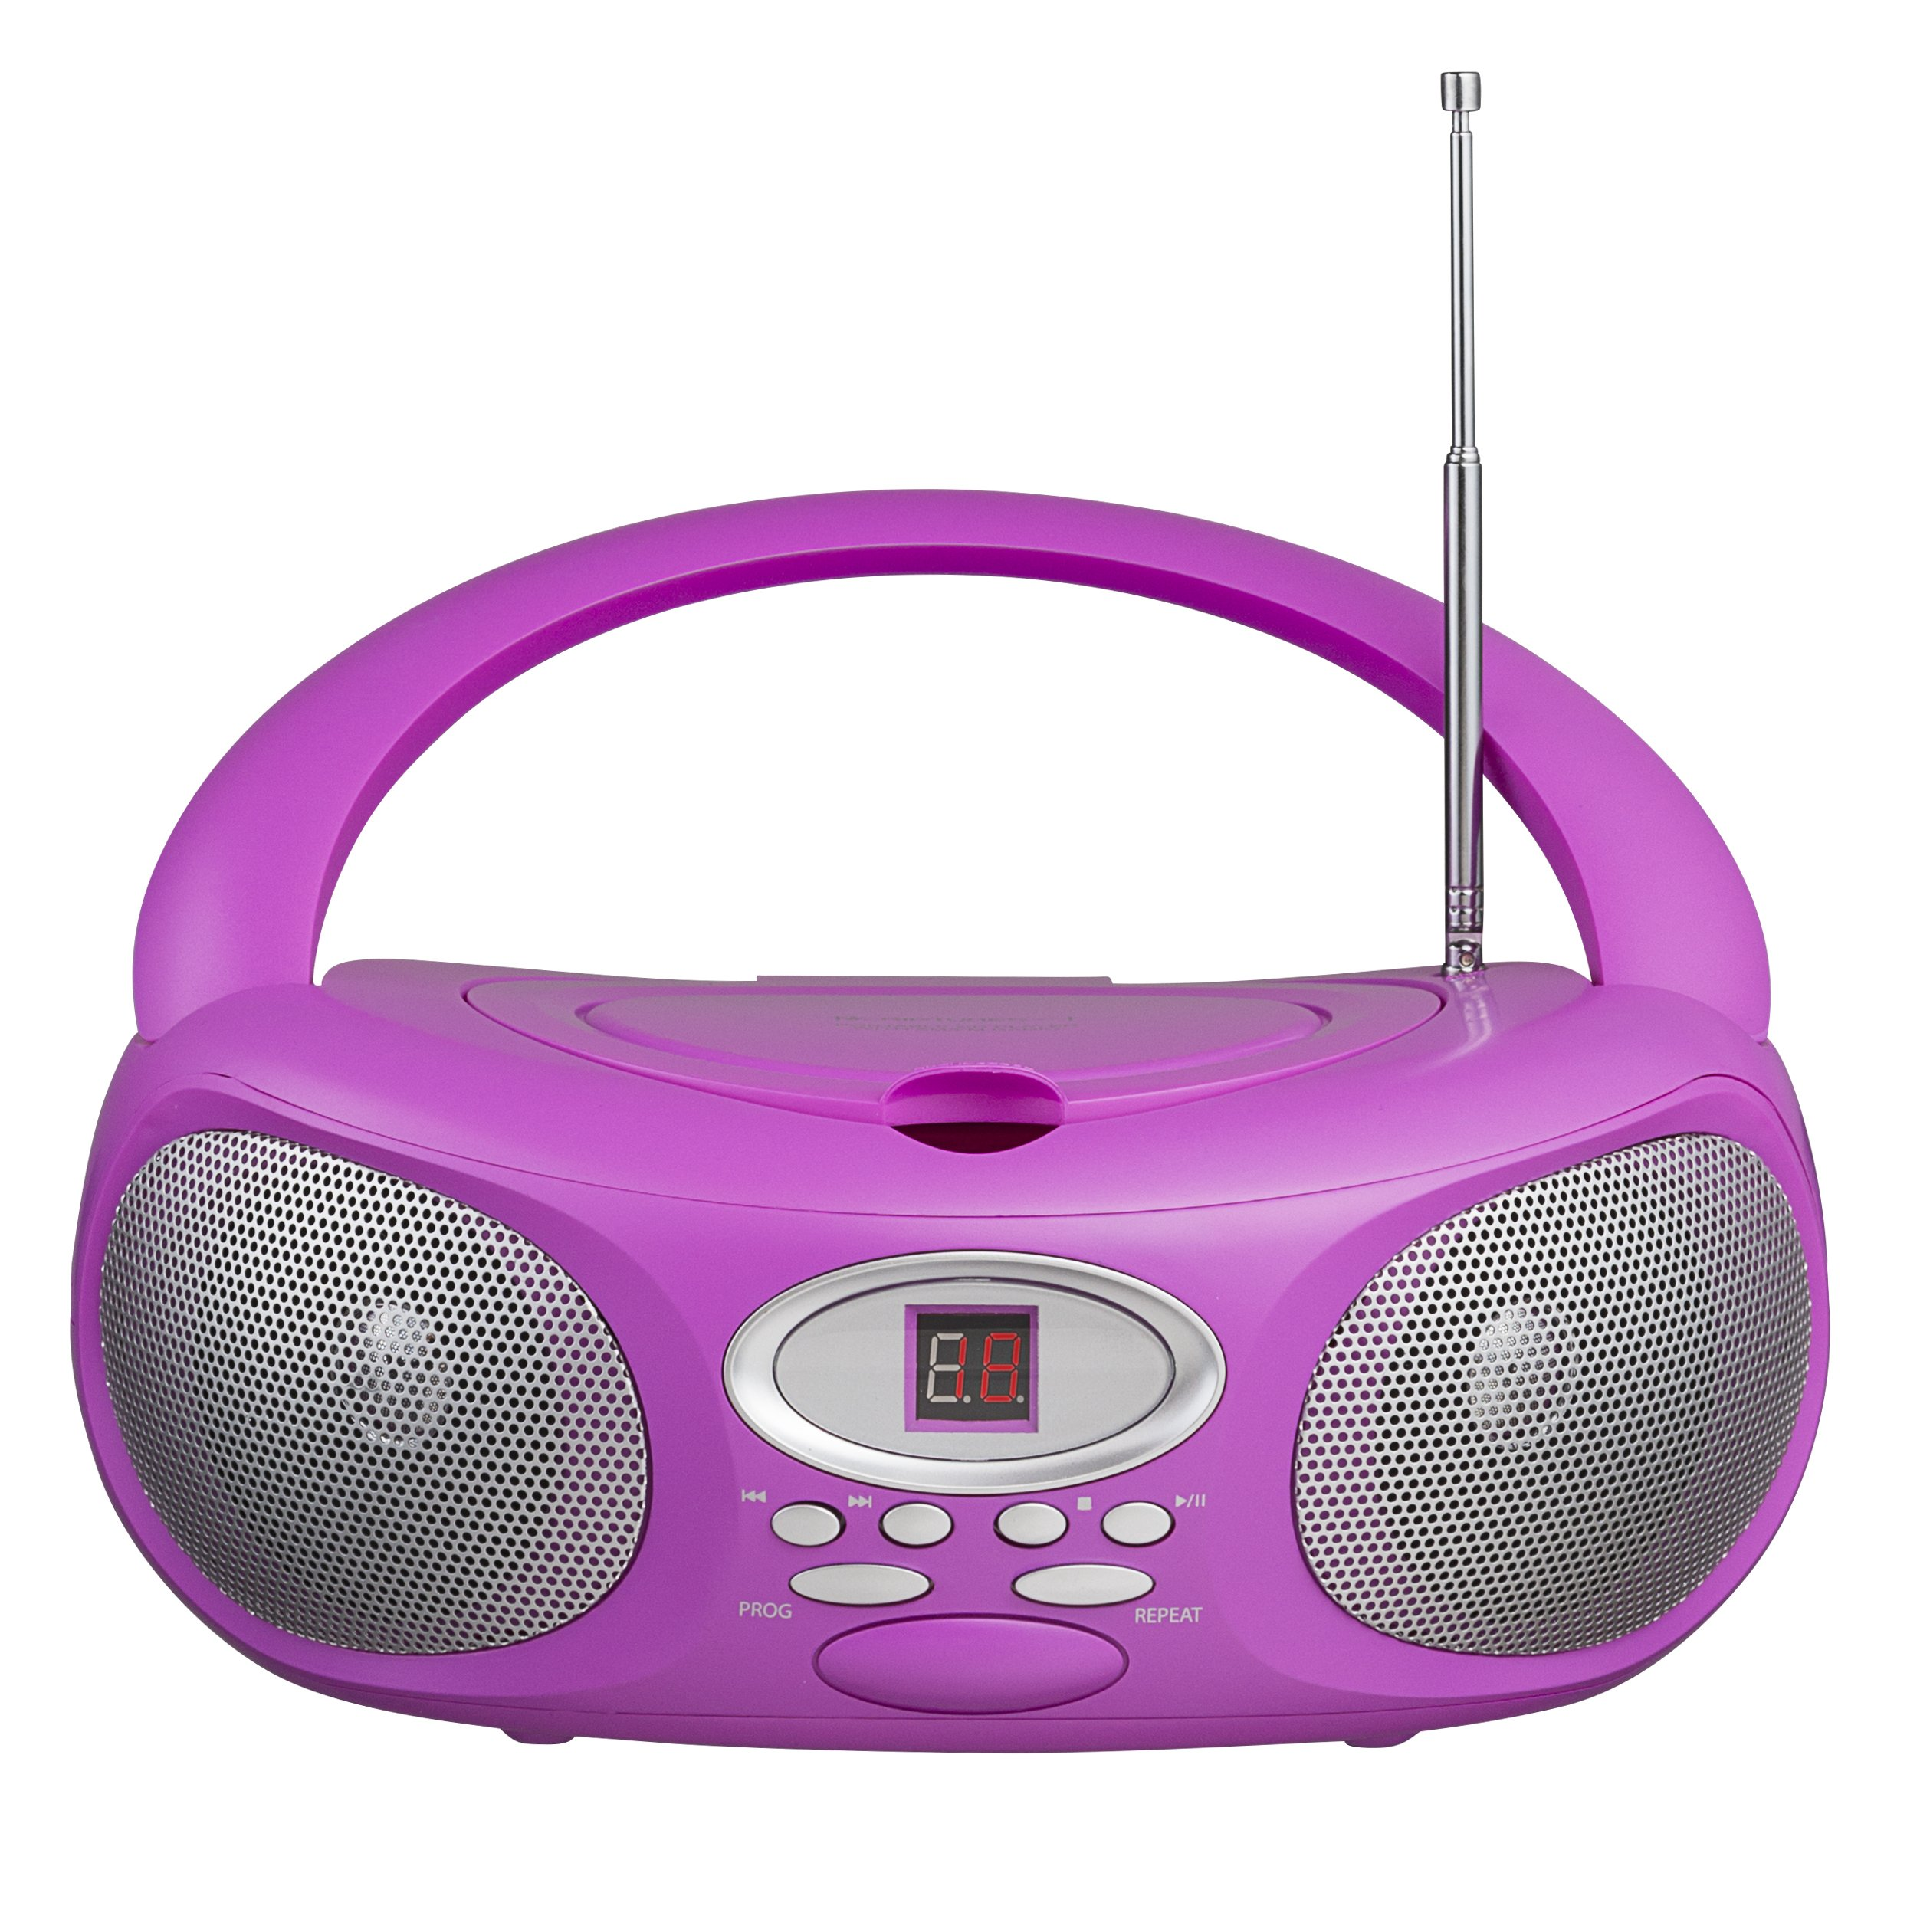 Riptunes CDB220P Portable Music CD Boombox Player, AM/FM Radio, 3.5MM Auxiliary-in & Headphone Jack, LED Readout Display, Pink